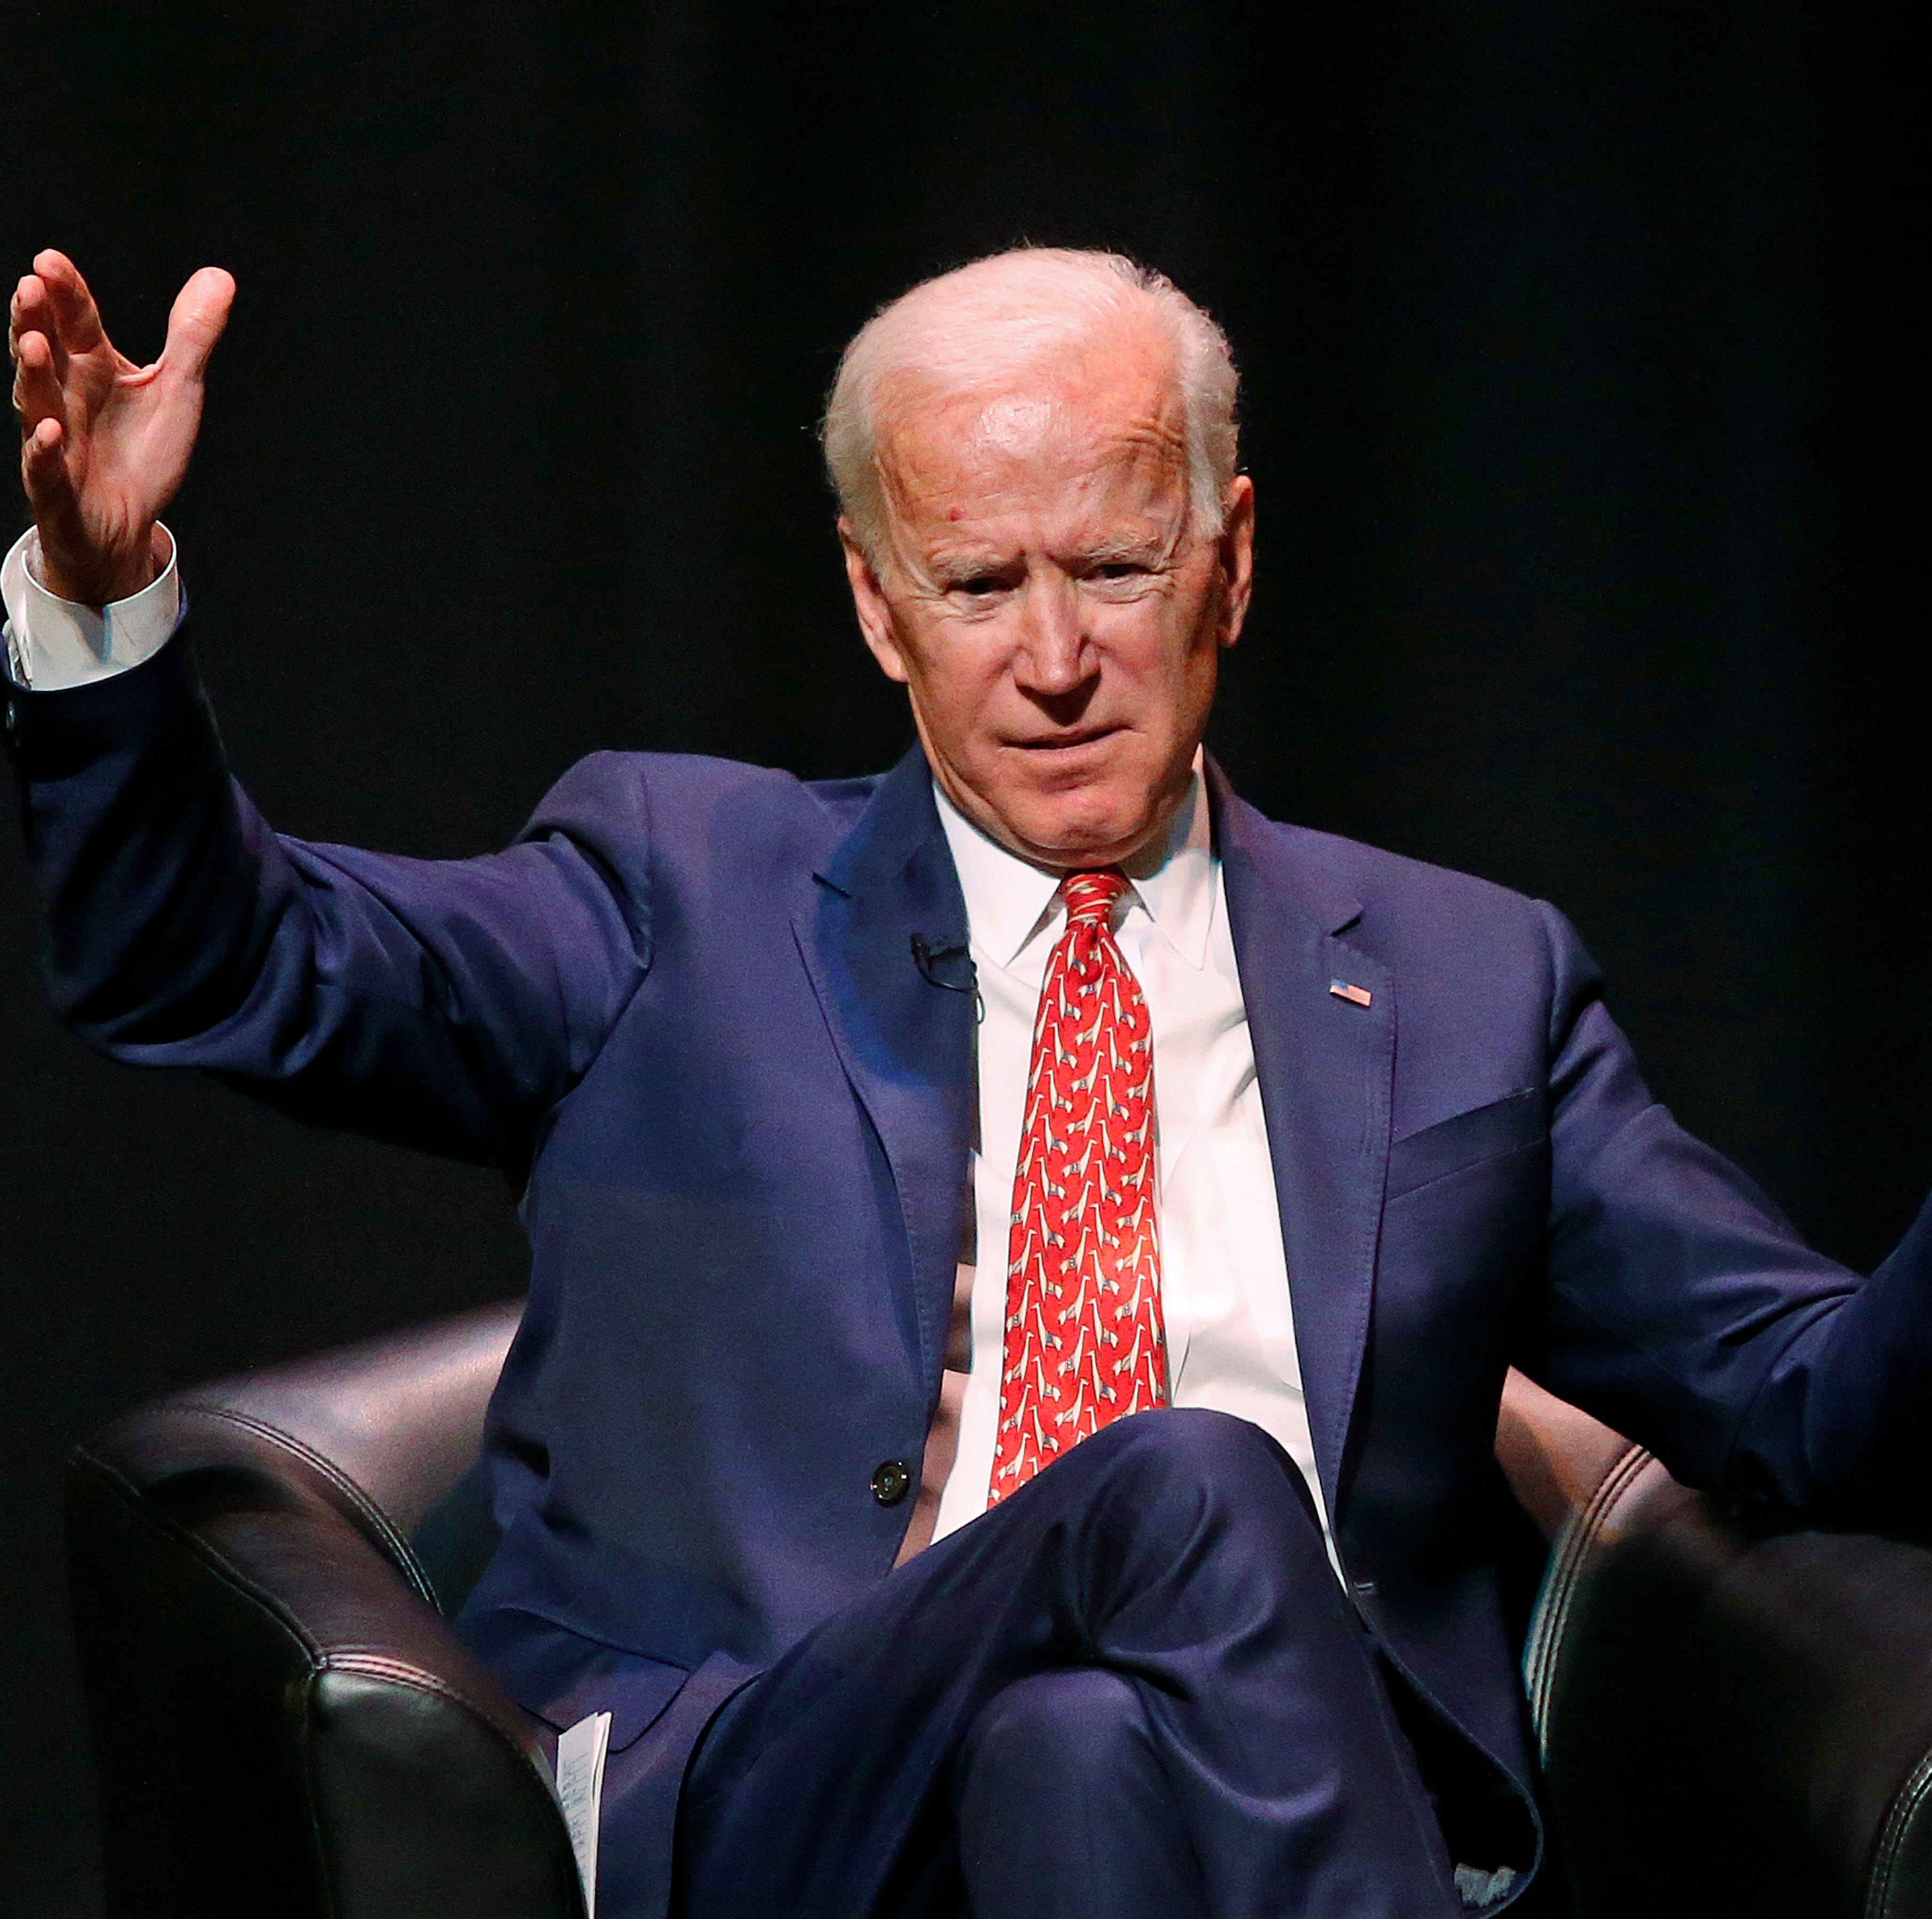 Is Joe Biden too old to run for president? Here's a look at 11 famous figures his age